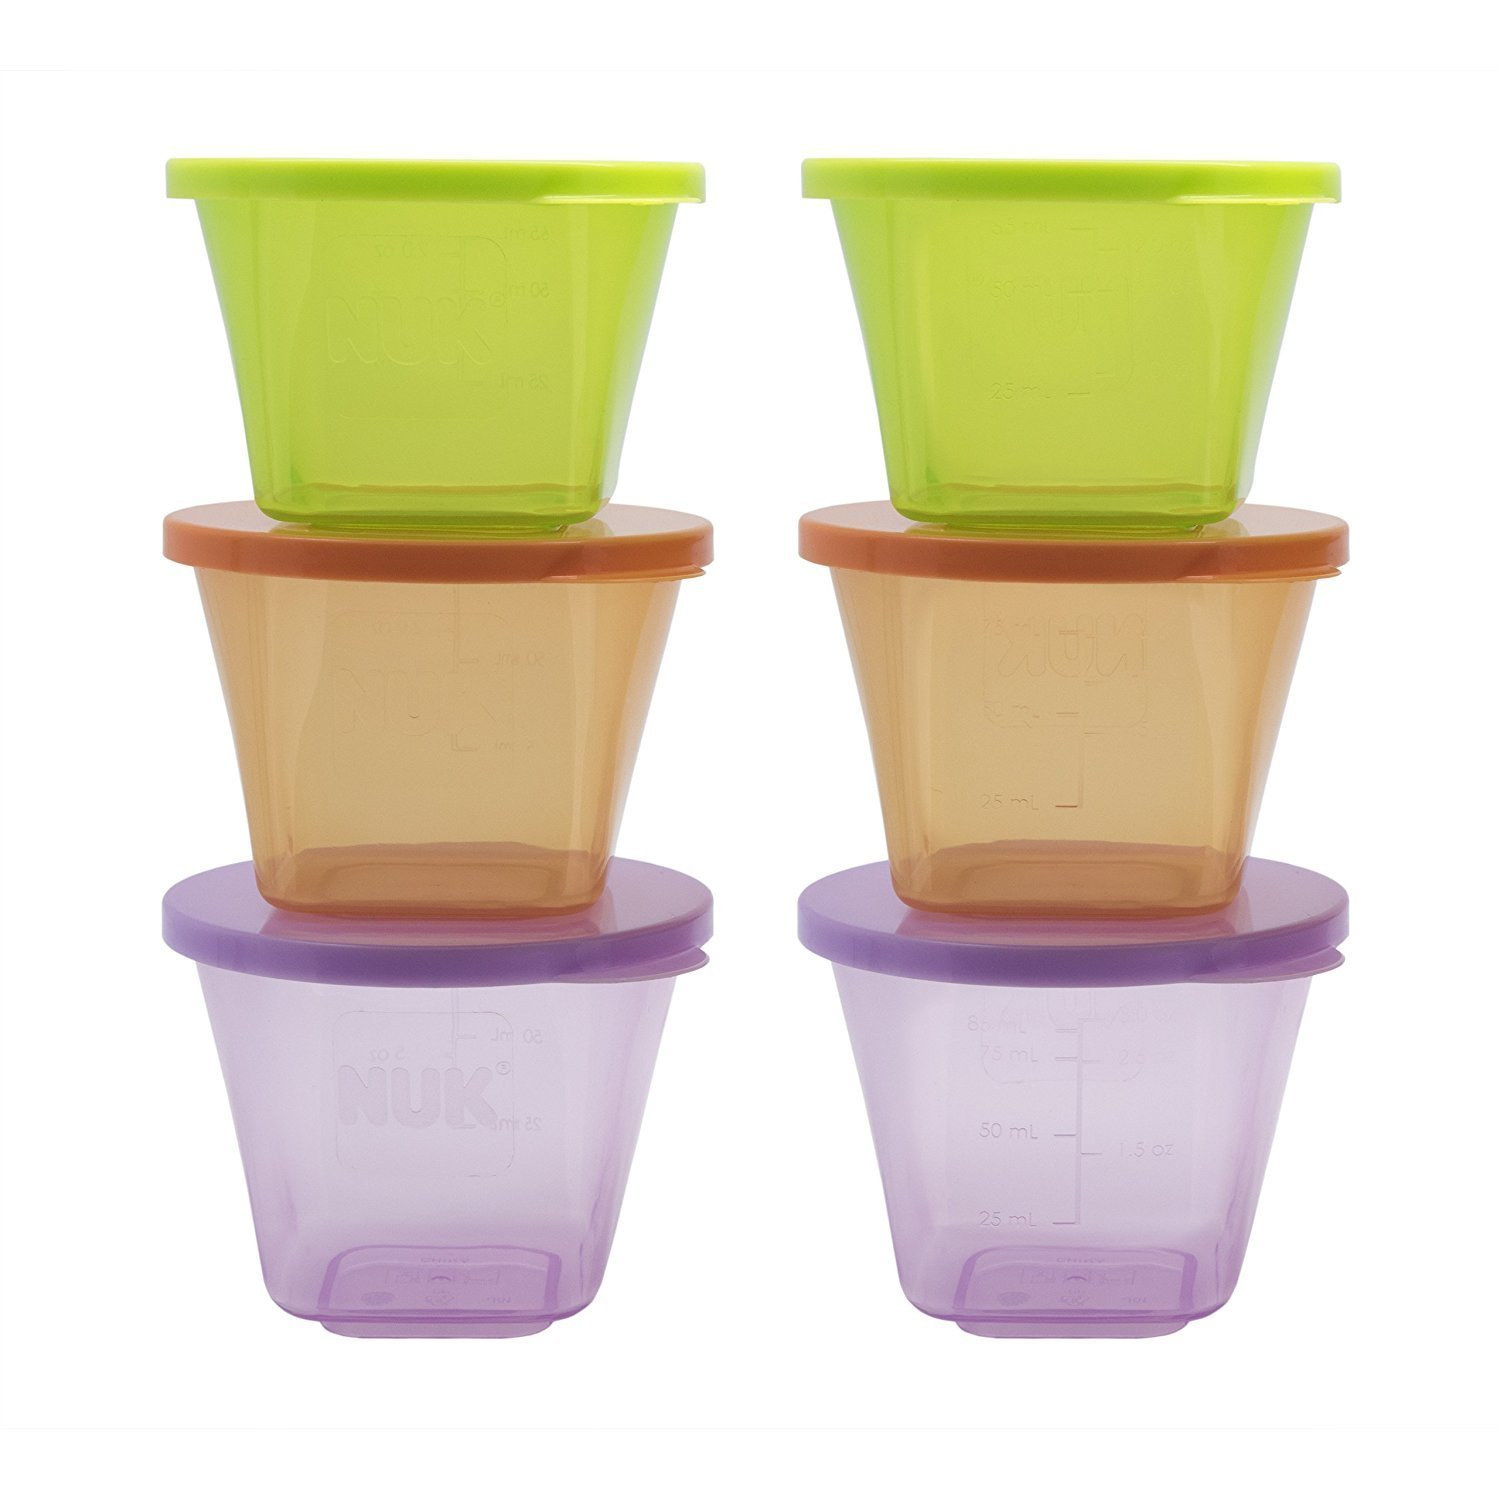 Annabel Karmel by NUK Stackable Storage Pots 10000012